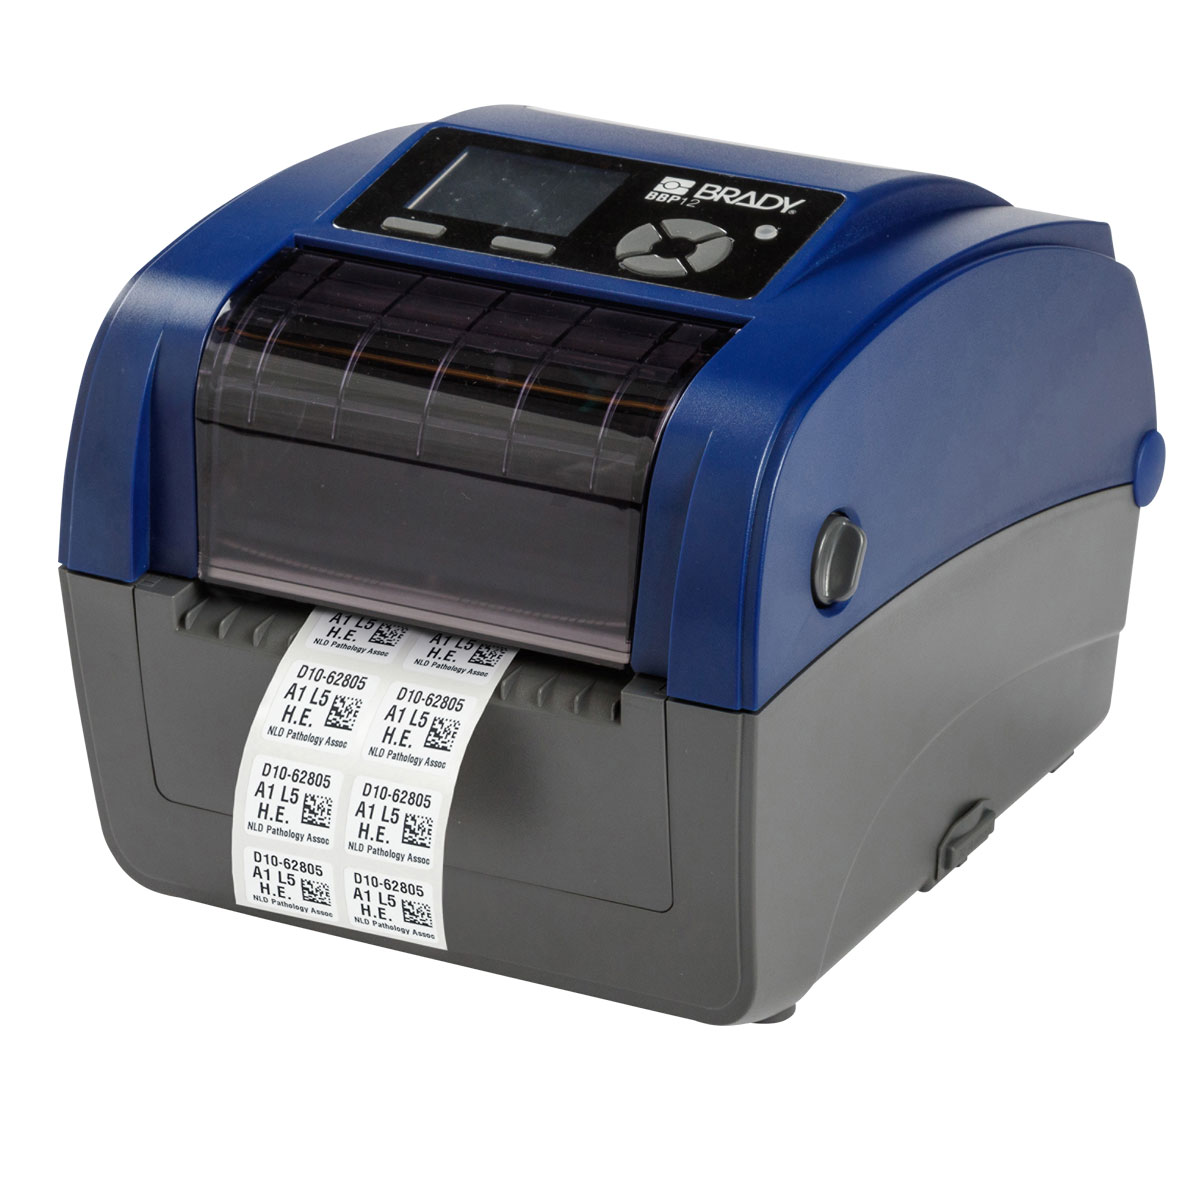 This is a picture of Monster 300 Dpi Label Printer